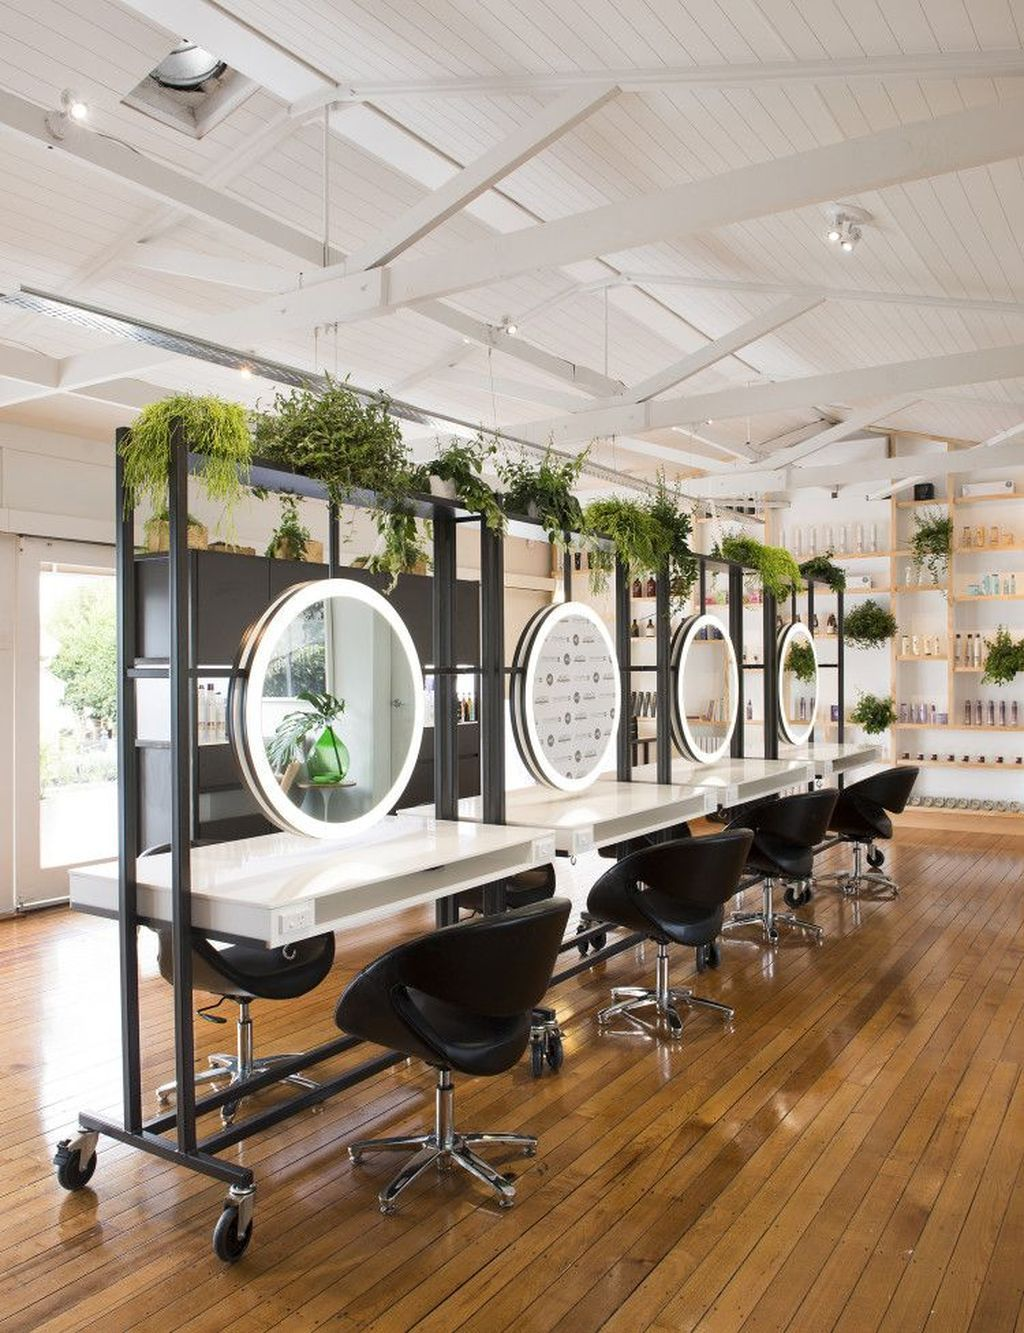 Salon Interior Design Ideas Uk Salon Interior Design In Sri Lanka Spa Salon Interior Design In 2020 Hair Salon Interior Salon Interior Design Beauty Salon Interior,Most Popular T Shirt Designs